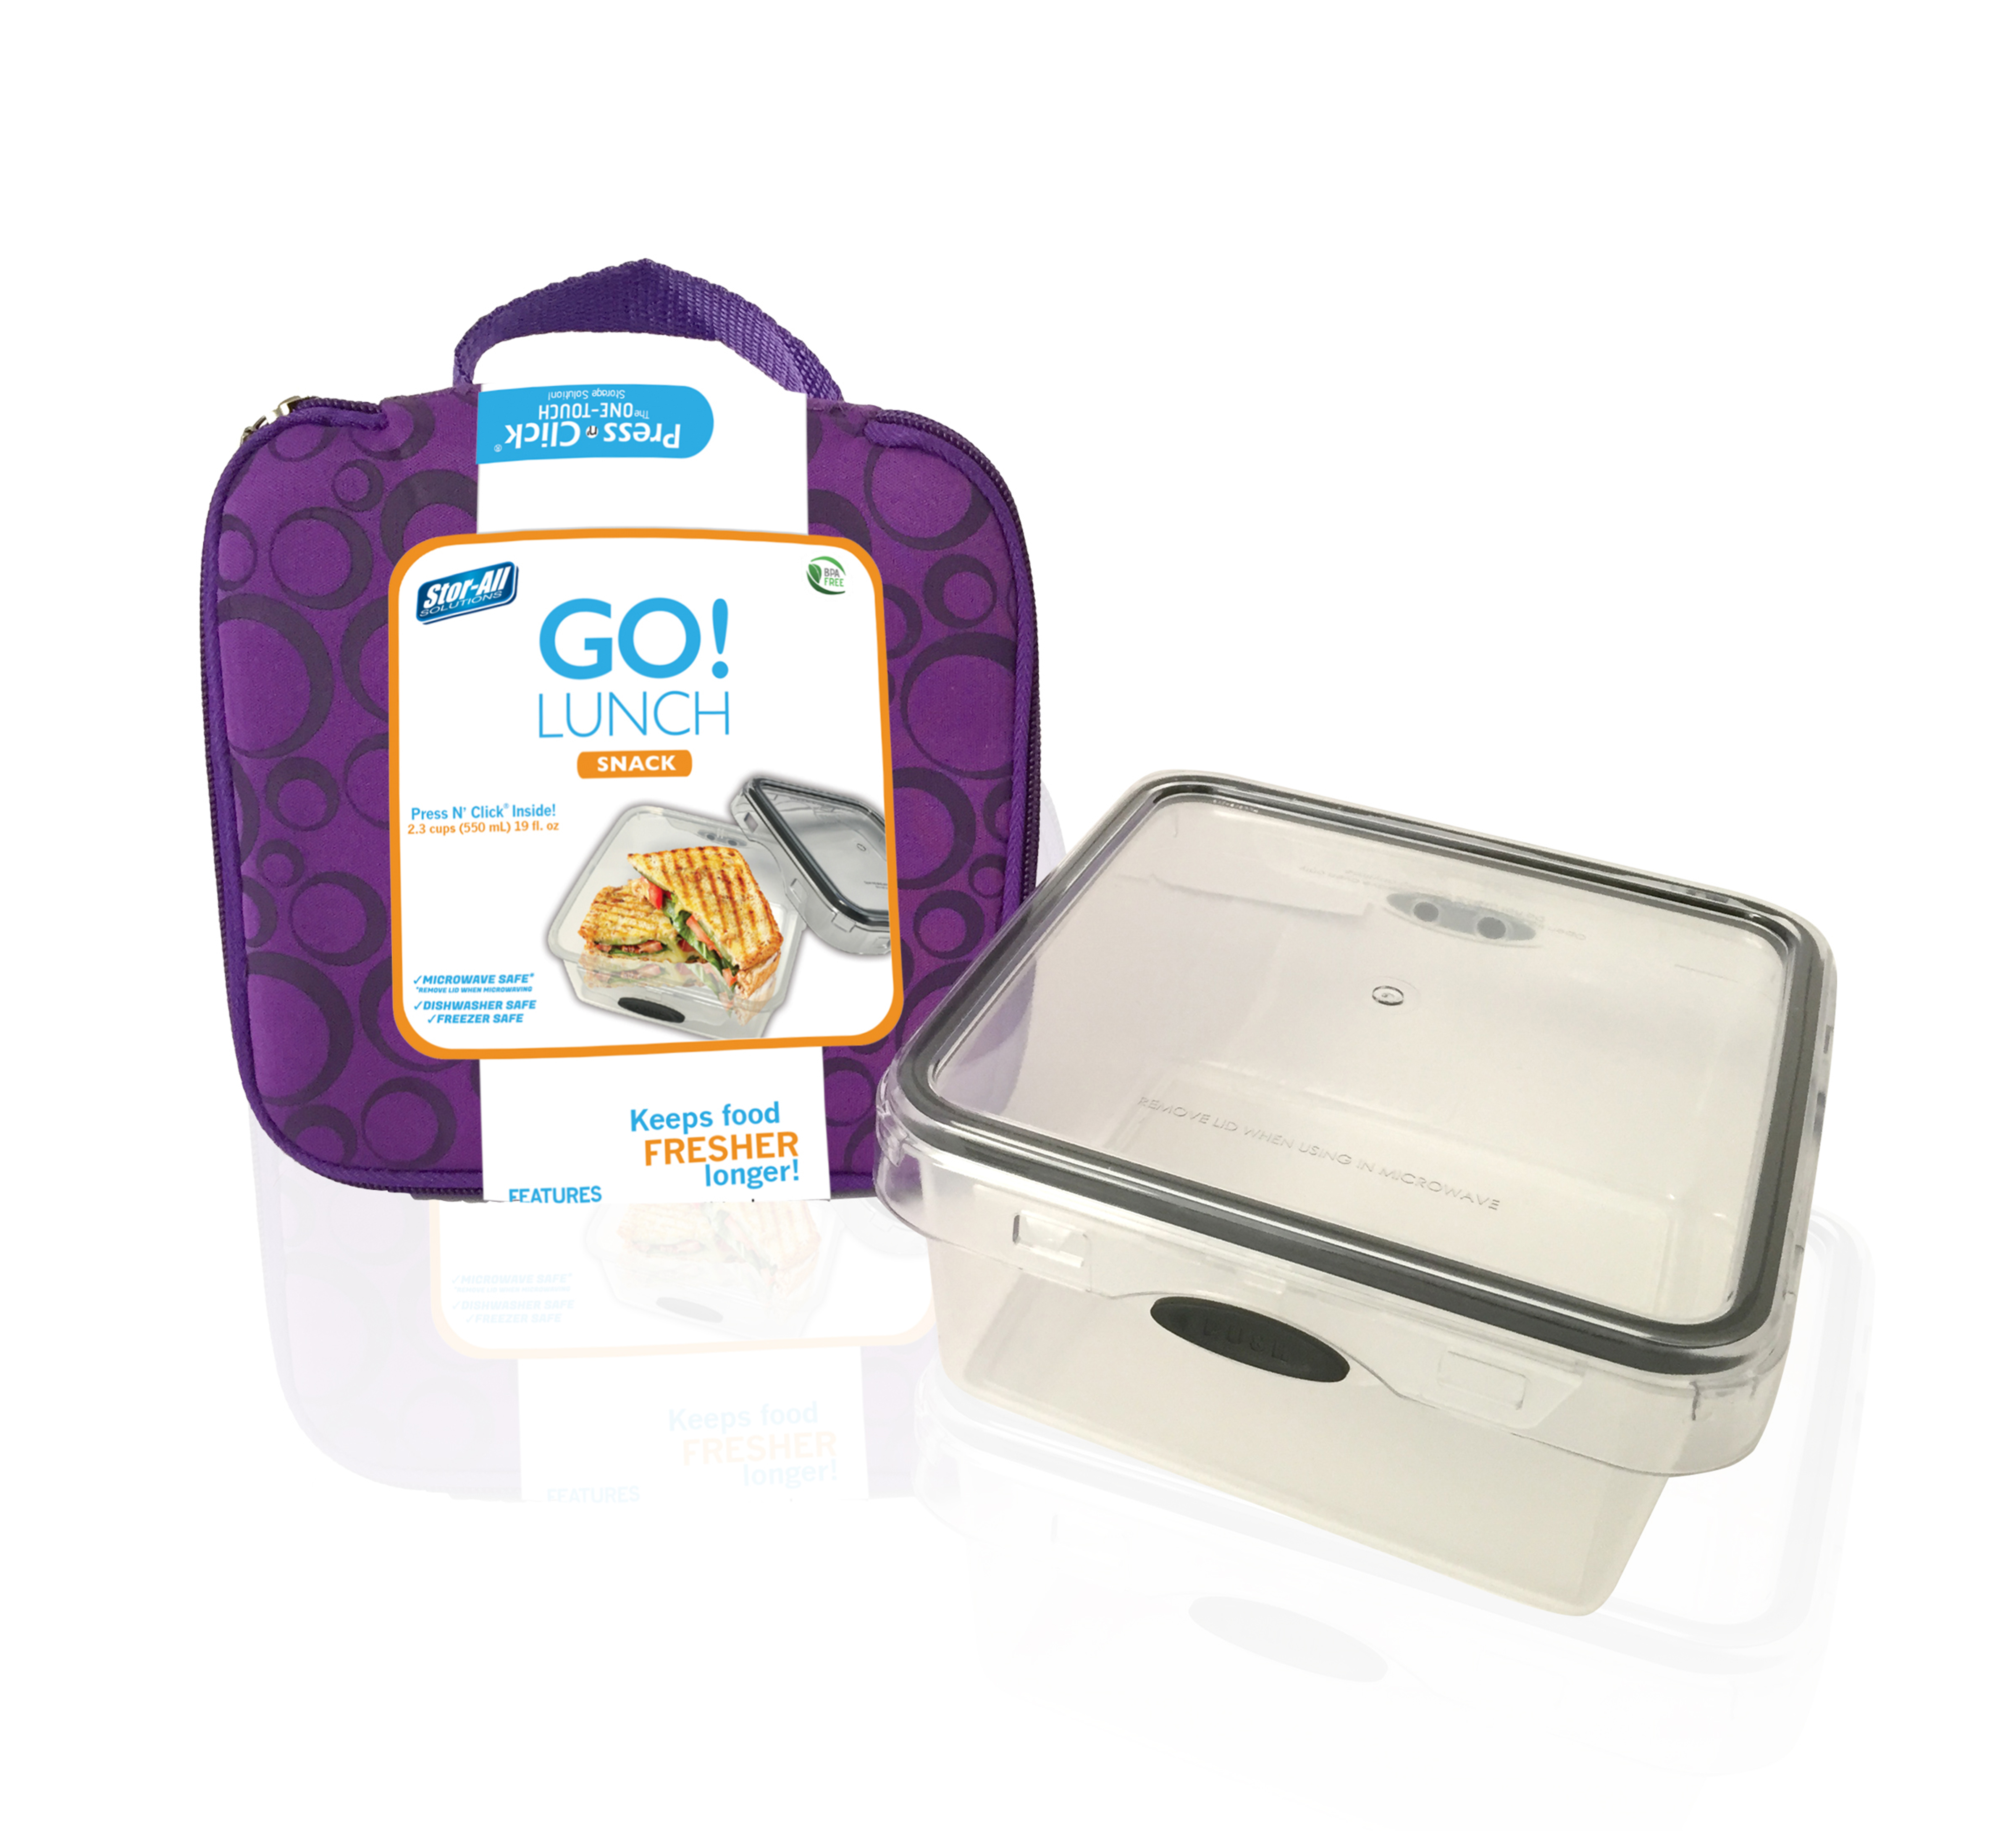 Go! Lunch Salad (Includes 4.9 Cup Square Press N' Click Container)